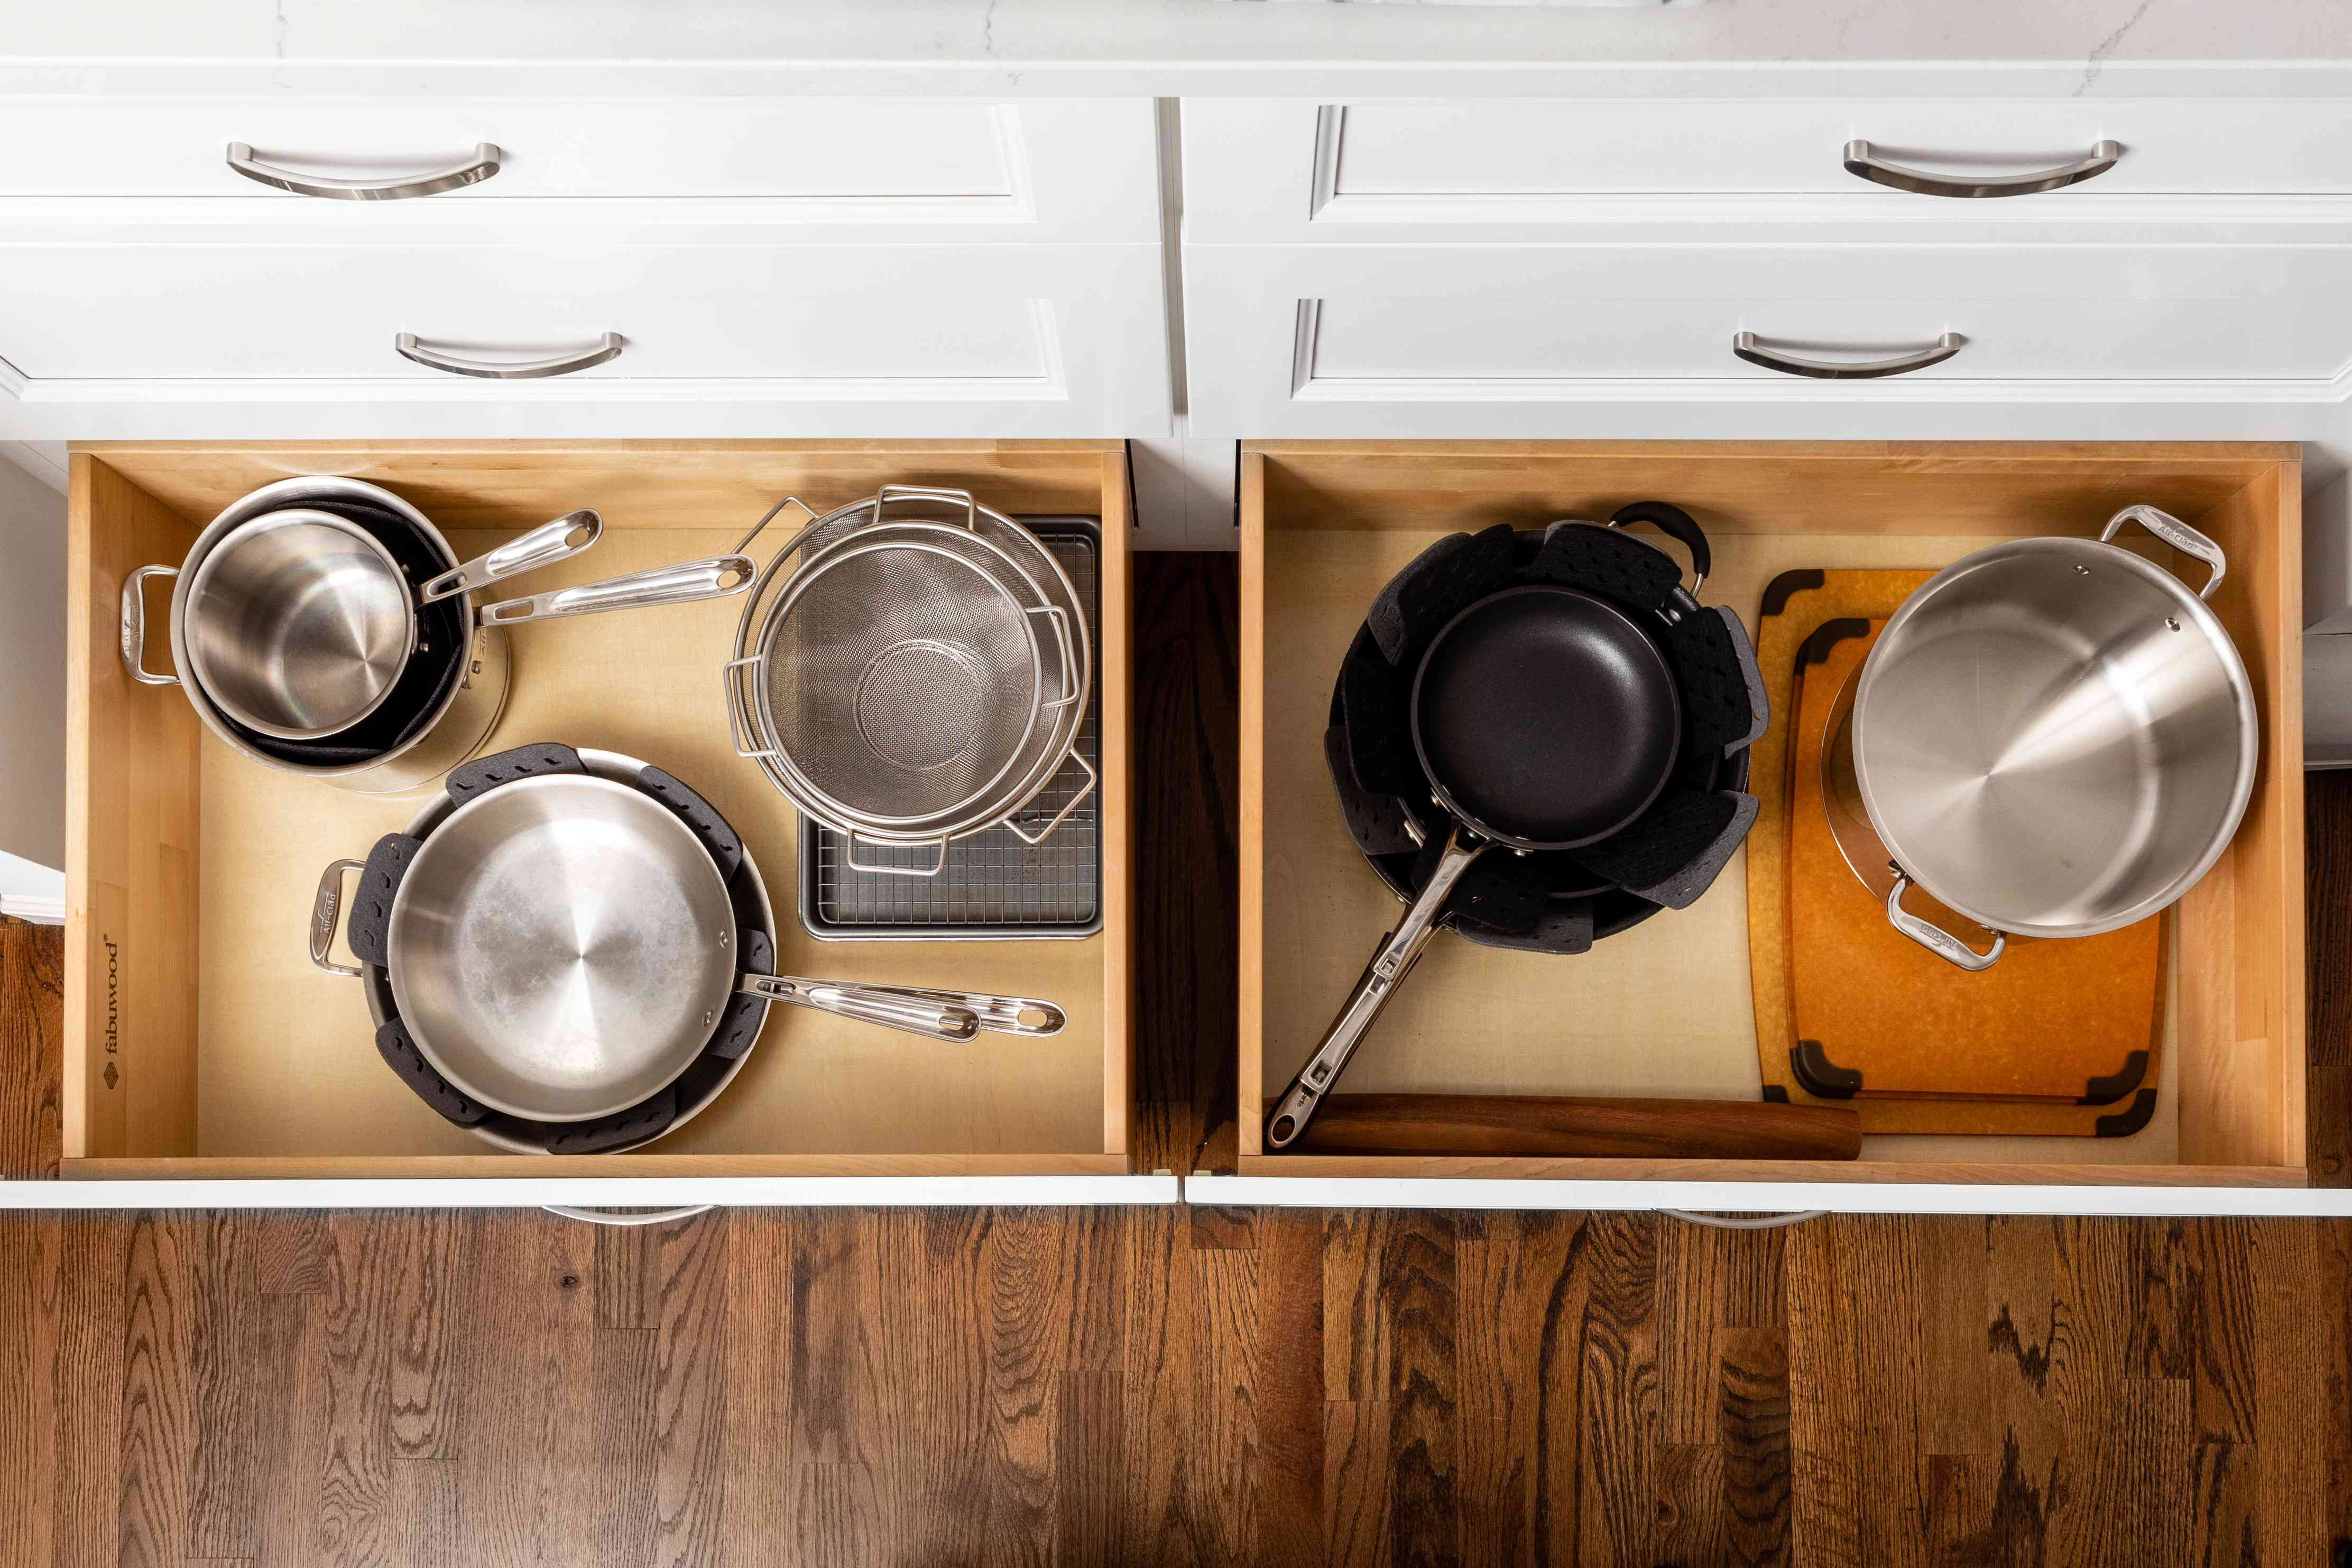 storing pots and pans in drawers